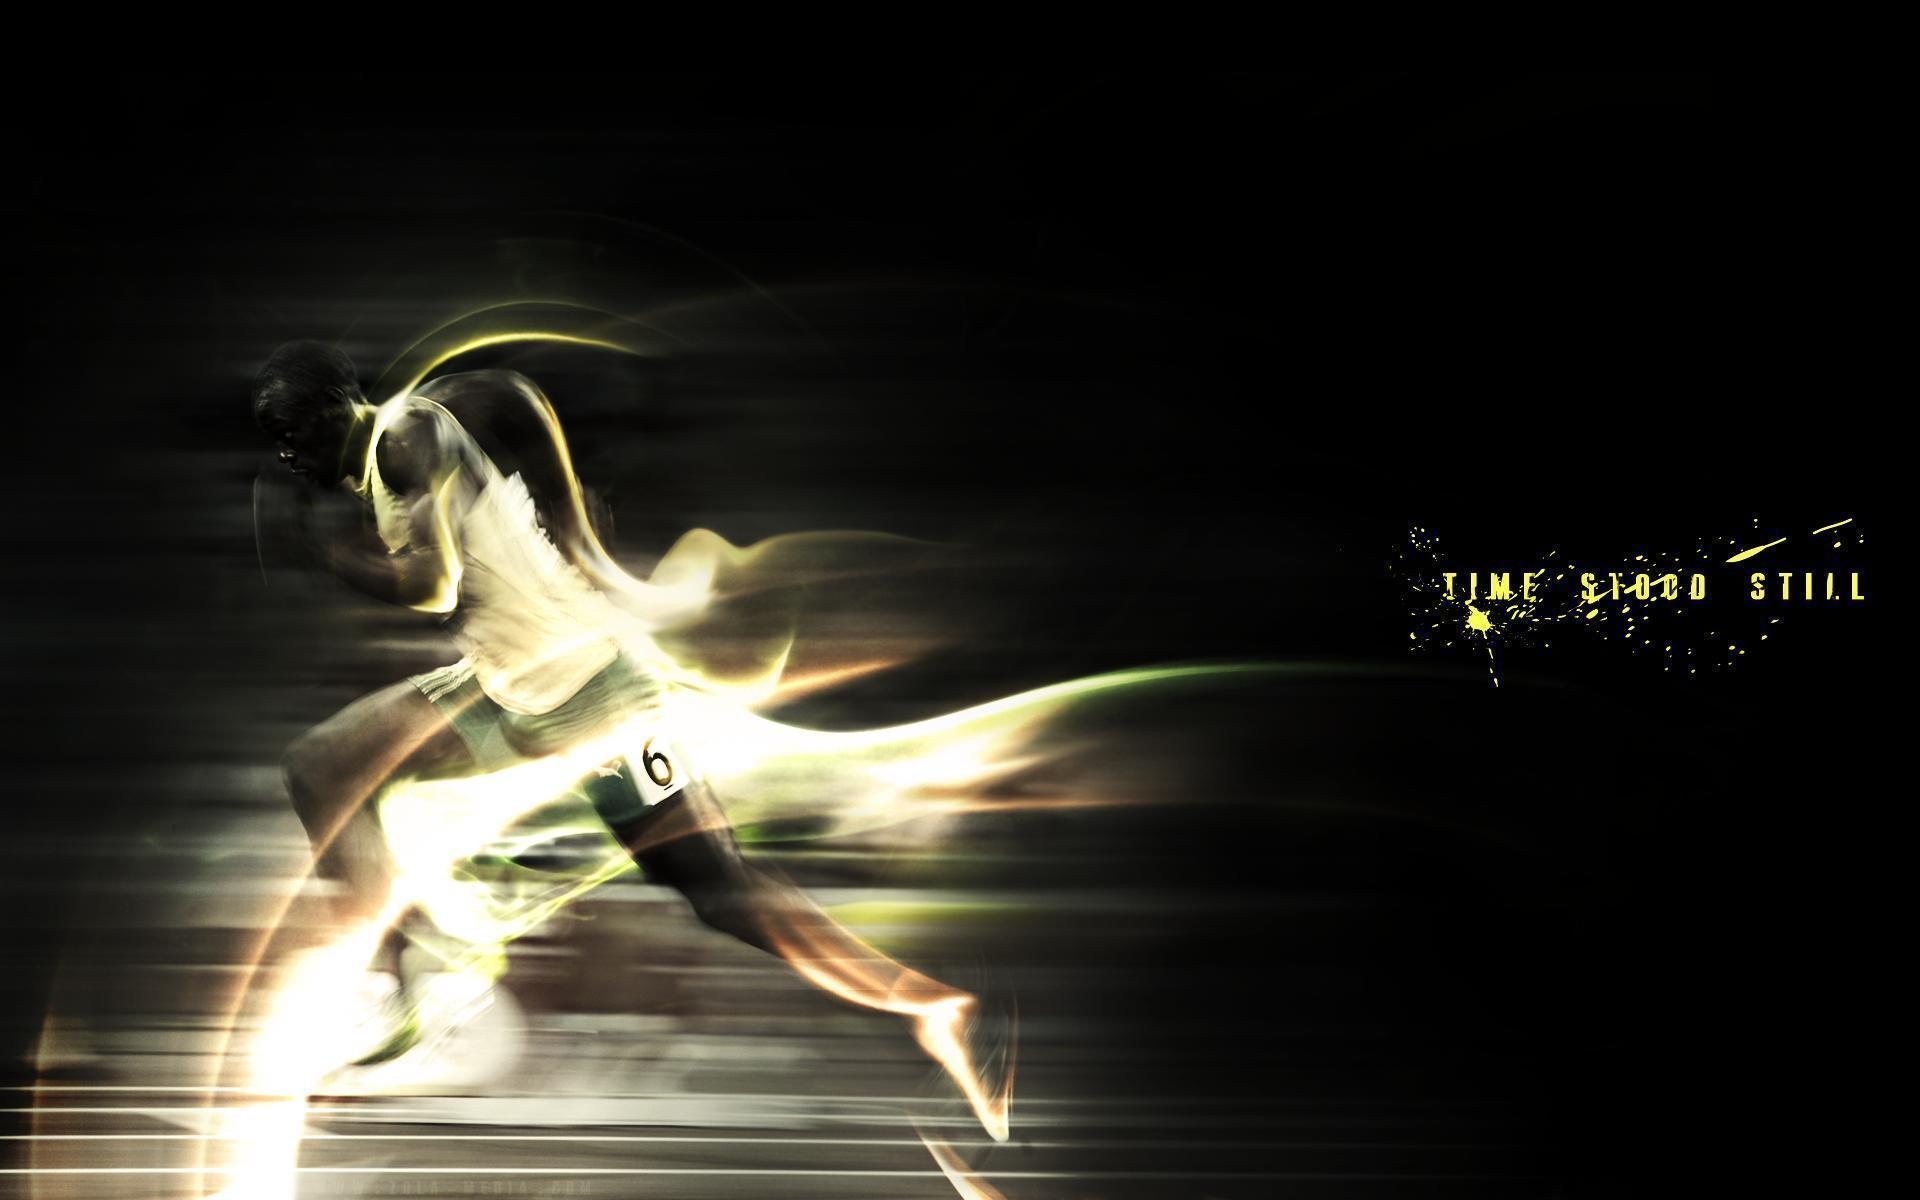 Usain Bolt Wallpapers Wallpaper Cave HD Wallpapers Download Free Images Wallpaper [1000image.com]